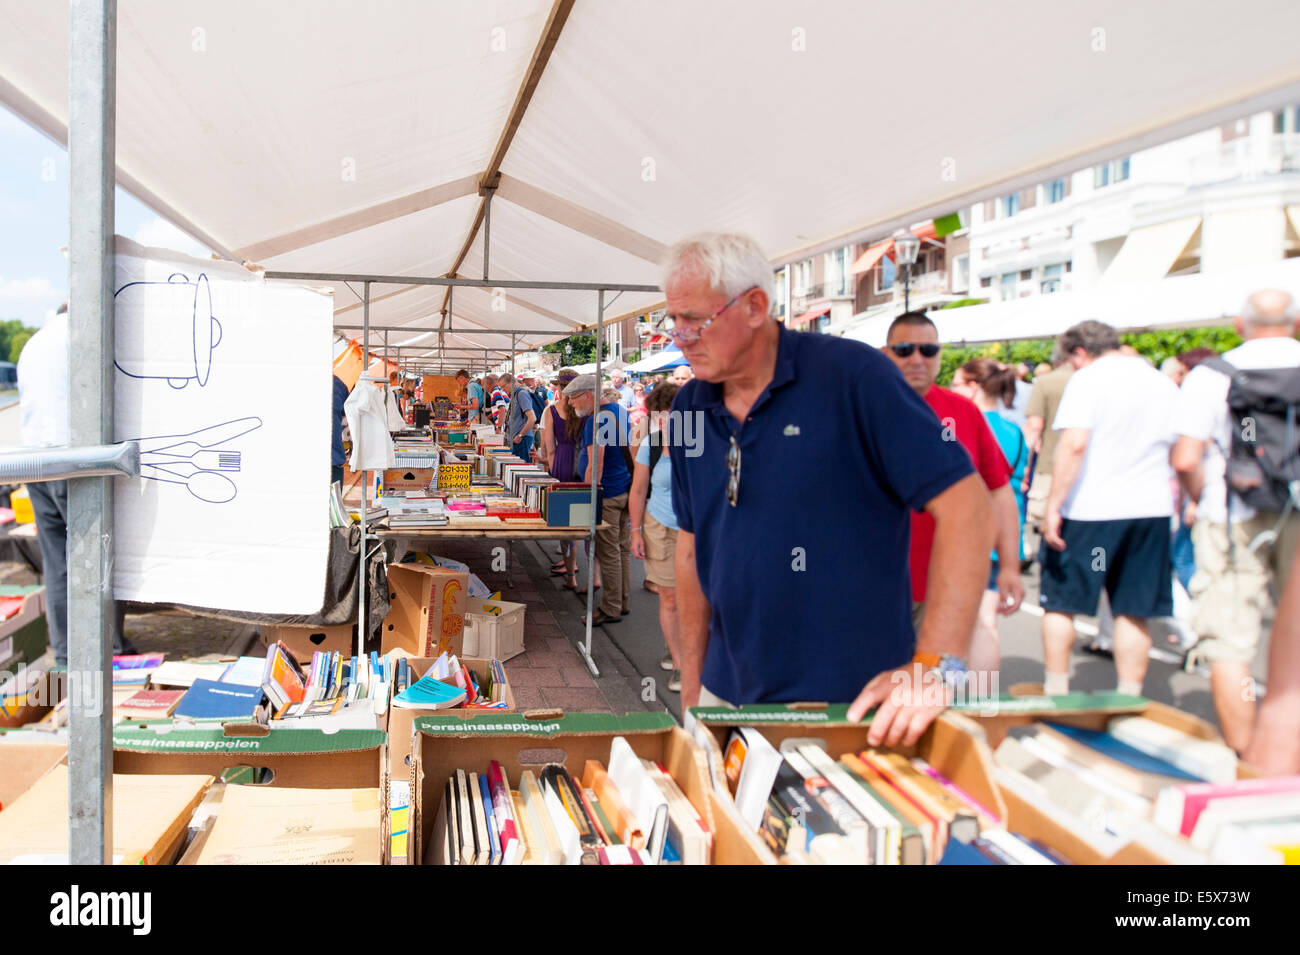 People shop at the Deventer book market in the Netherlands. Focal point is tilted and shifted at the row of books. - Stock Image